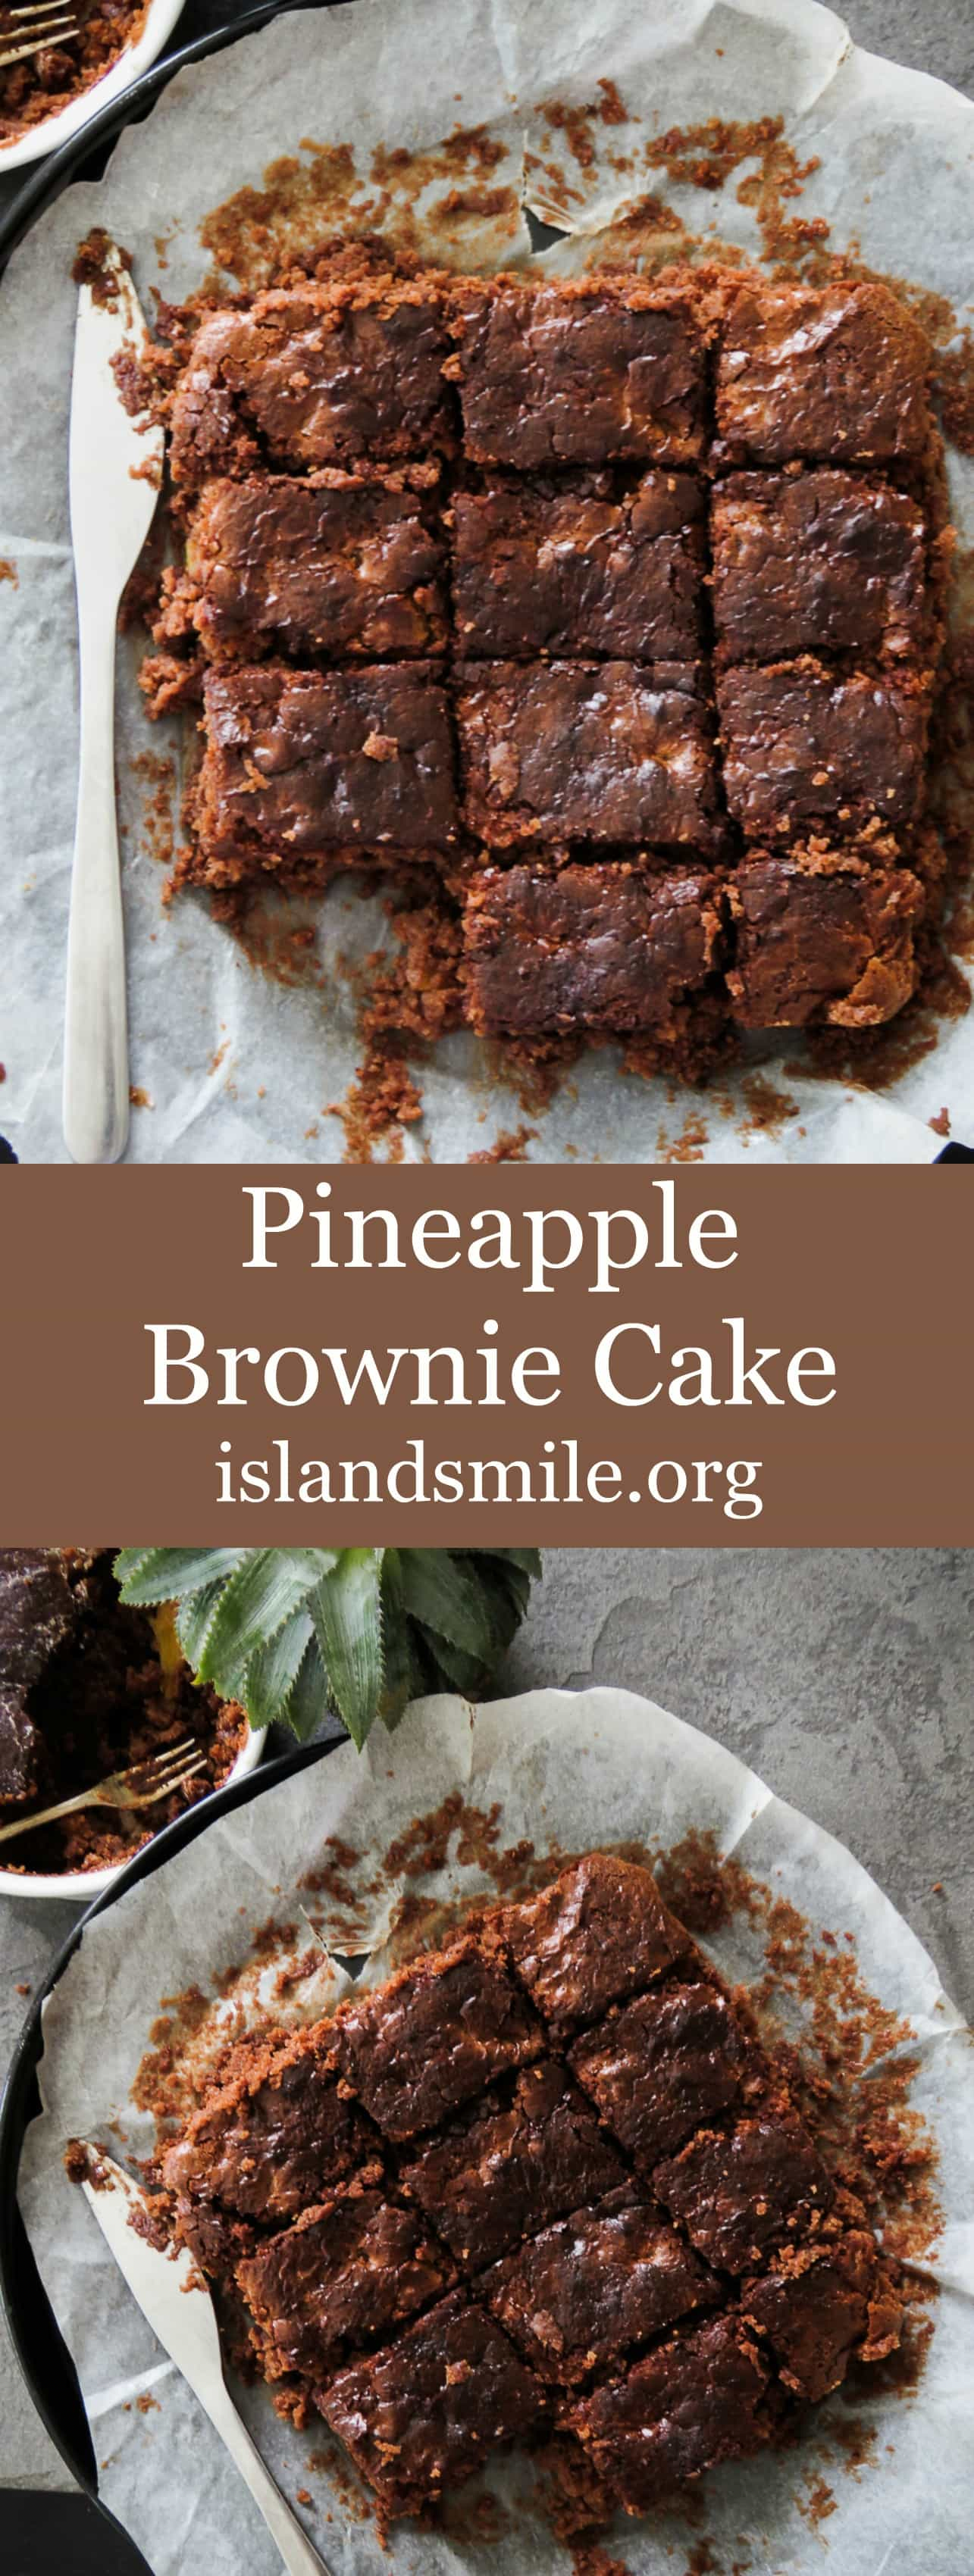 Pineapple Brownie cake